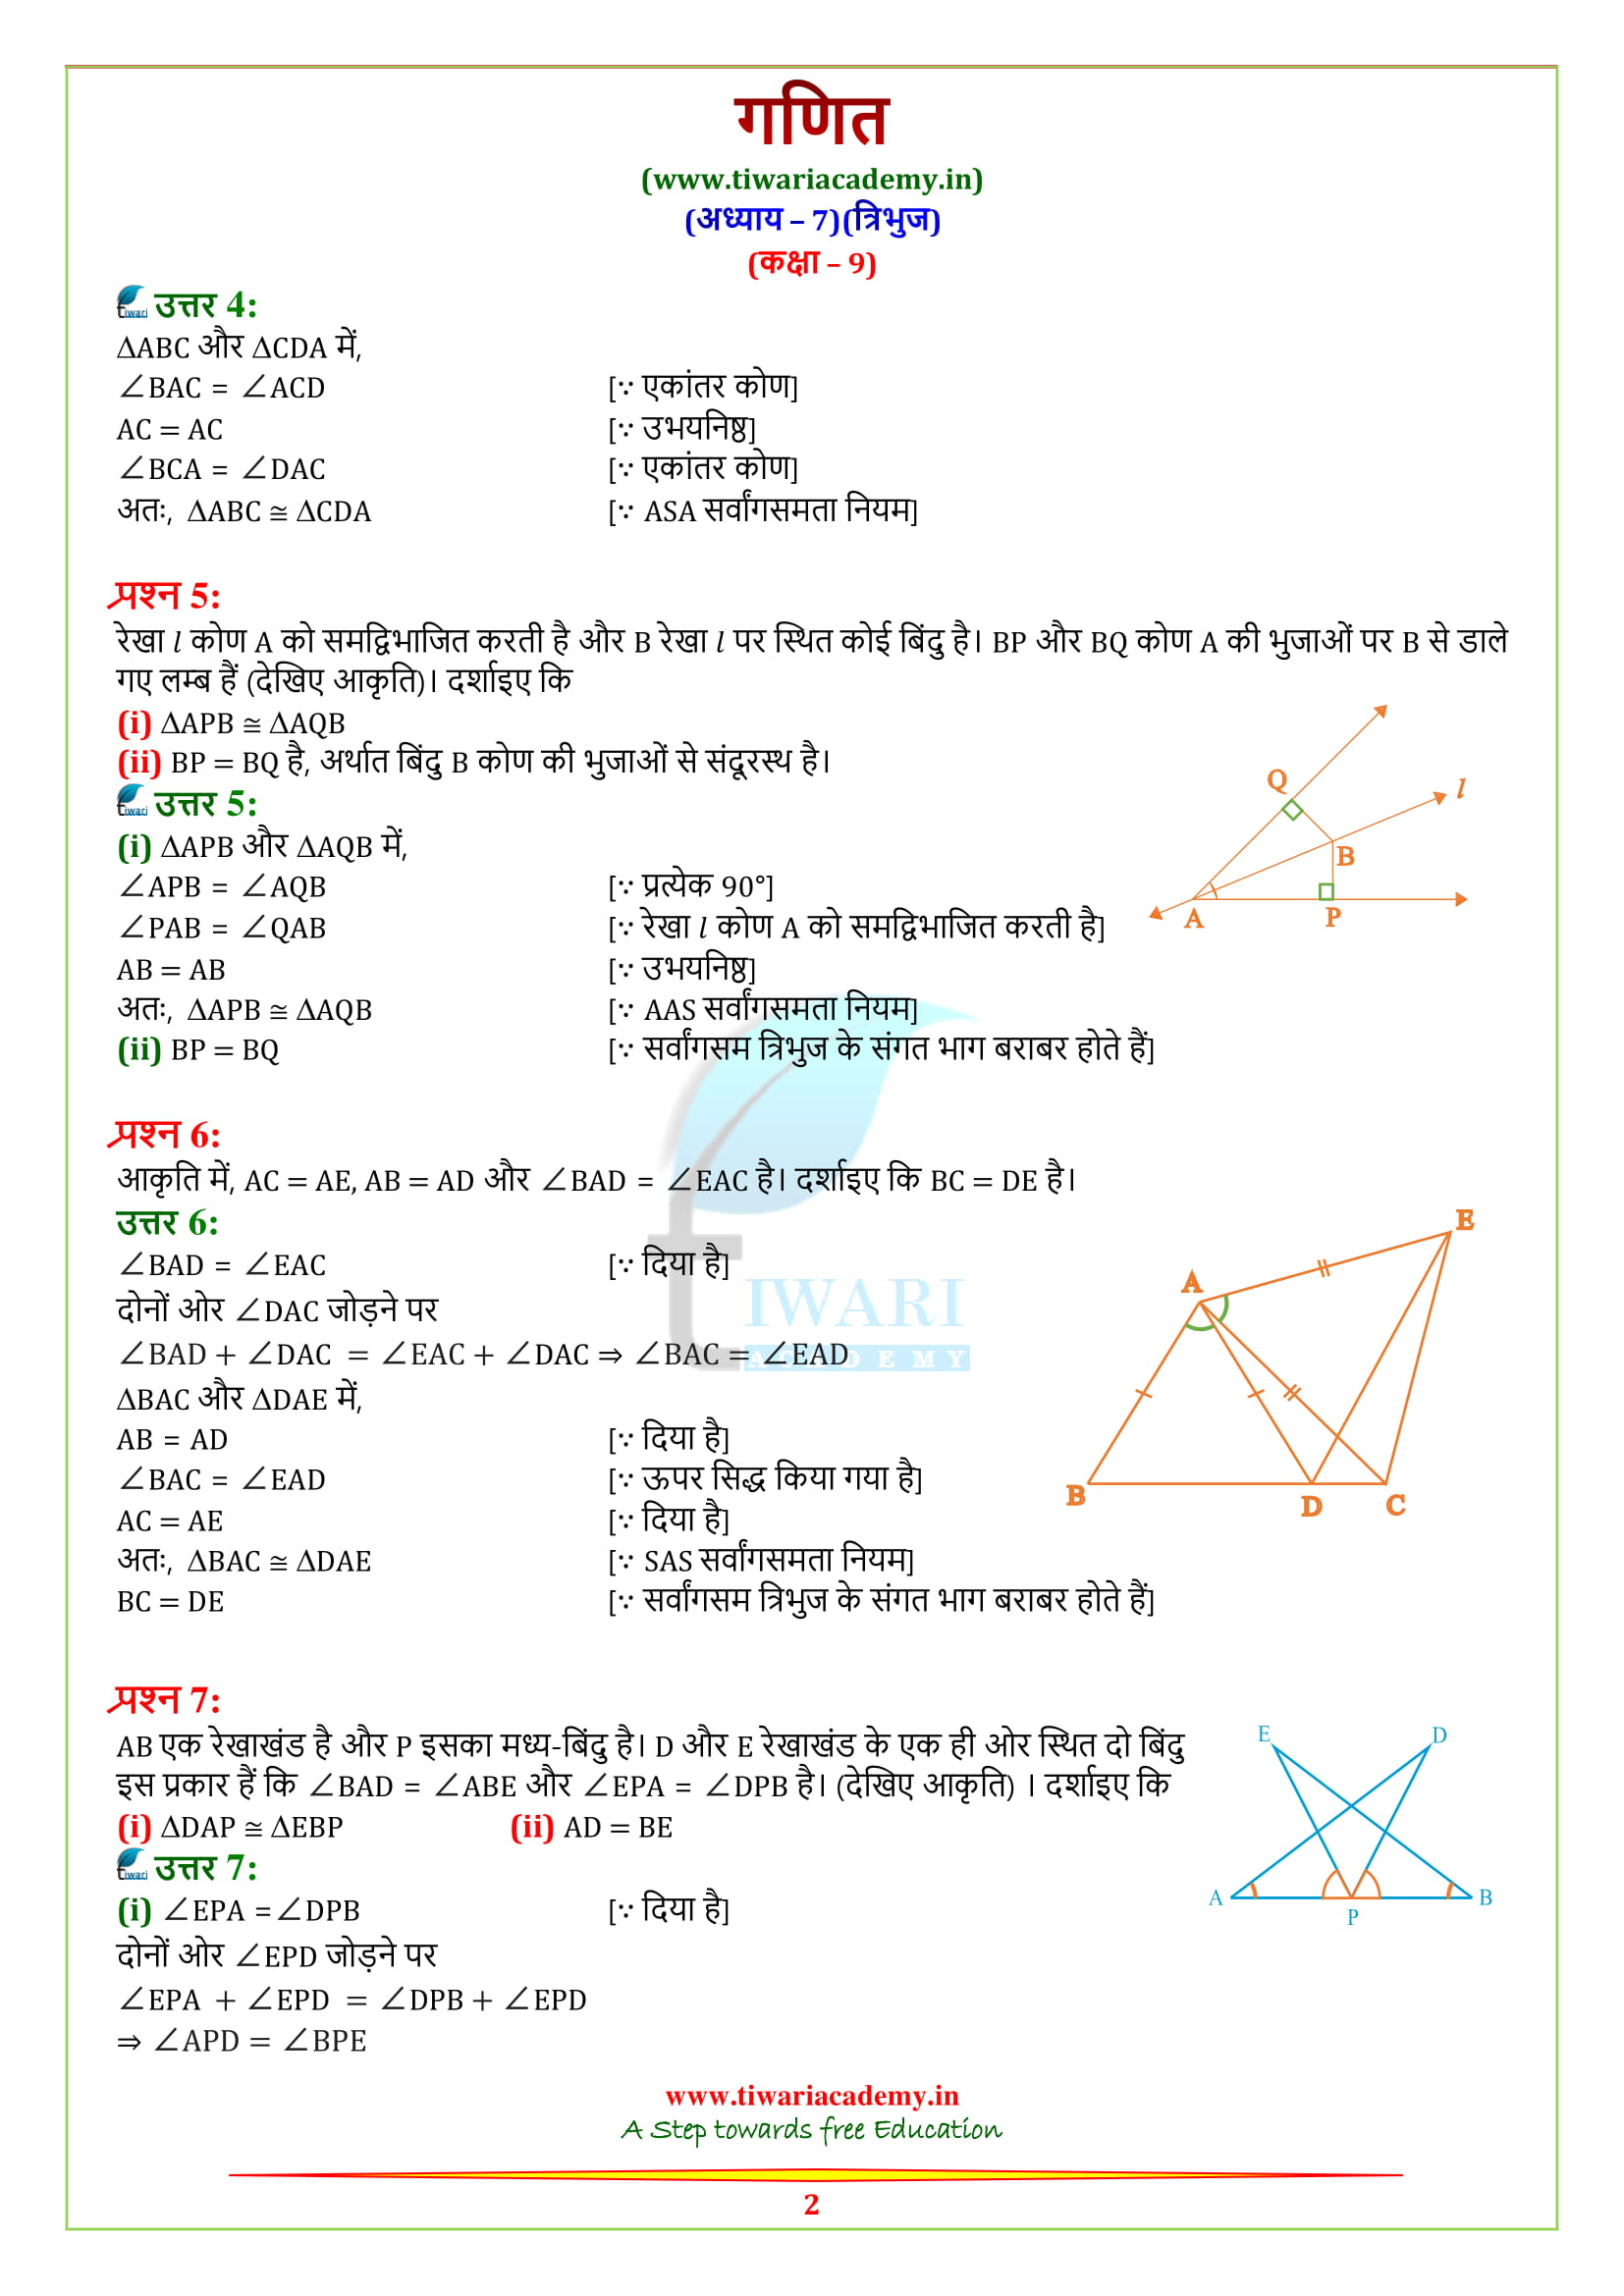 9 Maths Exercise 7.1 Solutions all question answers guide in hindi